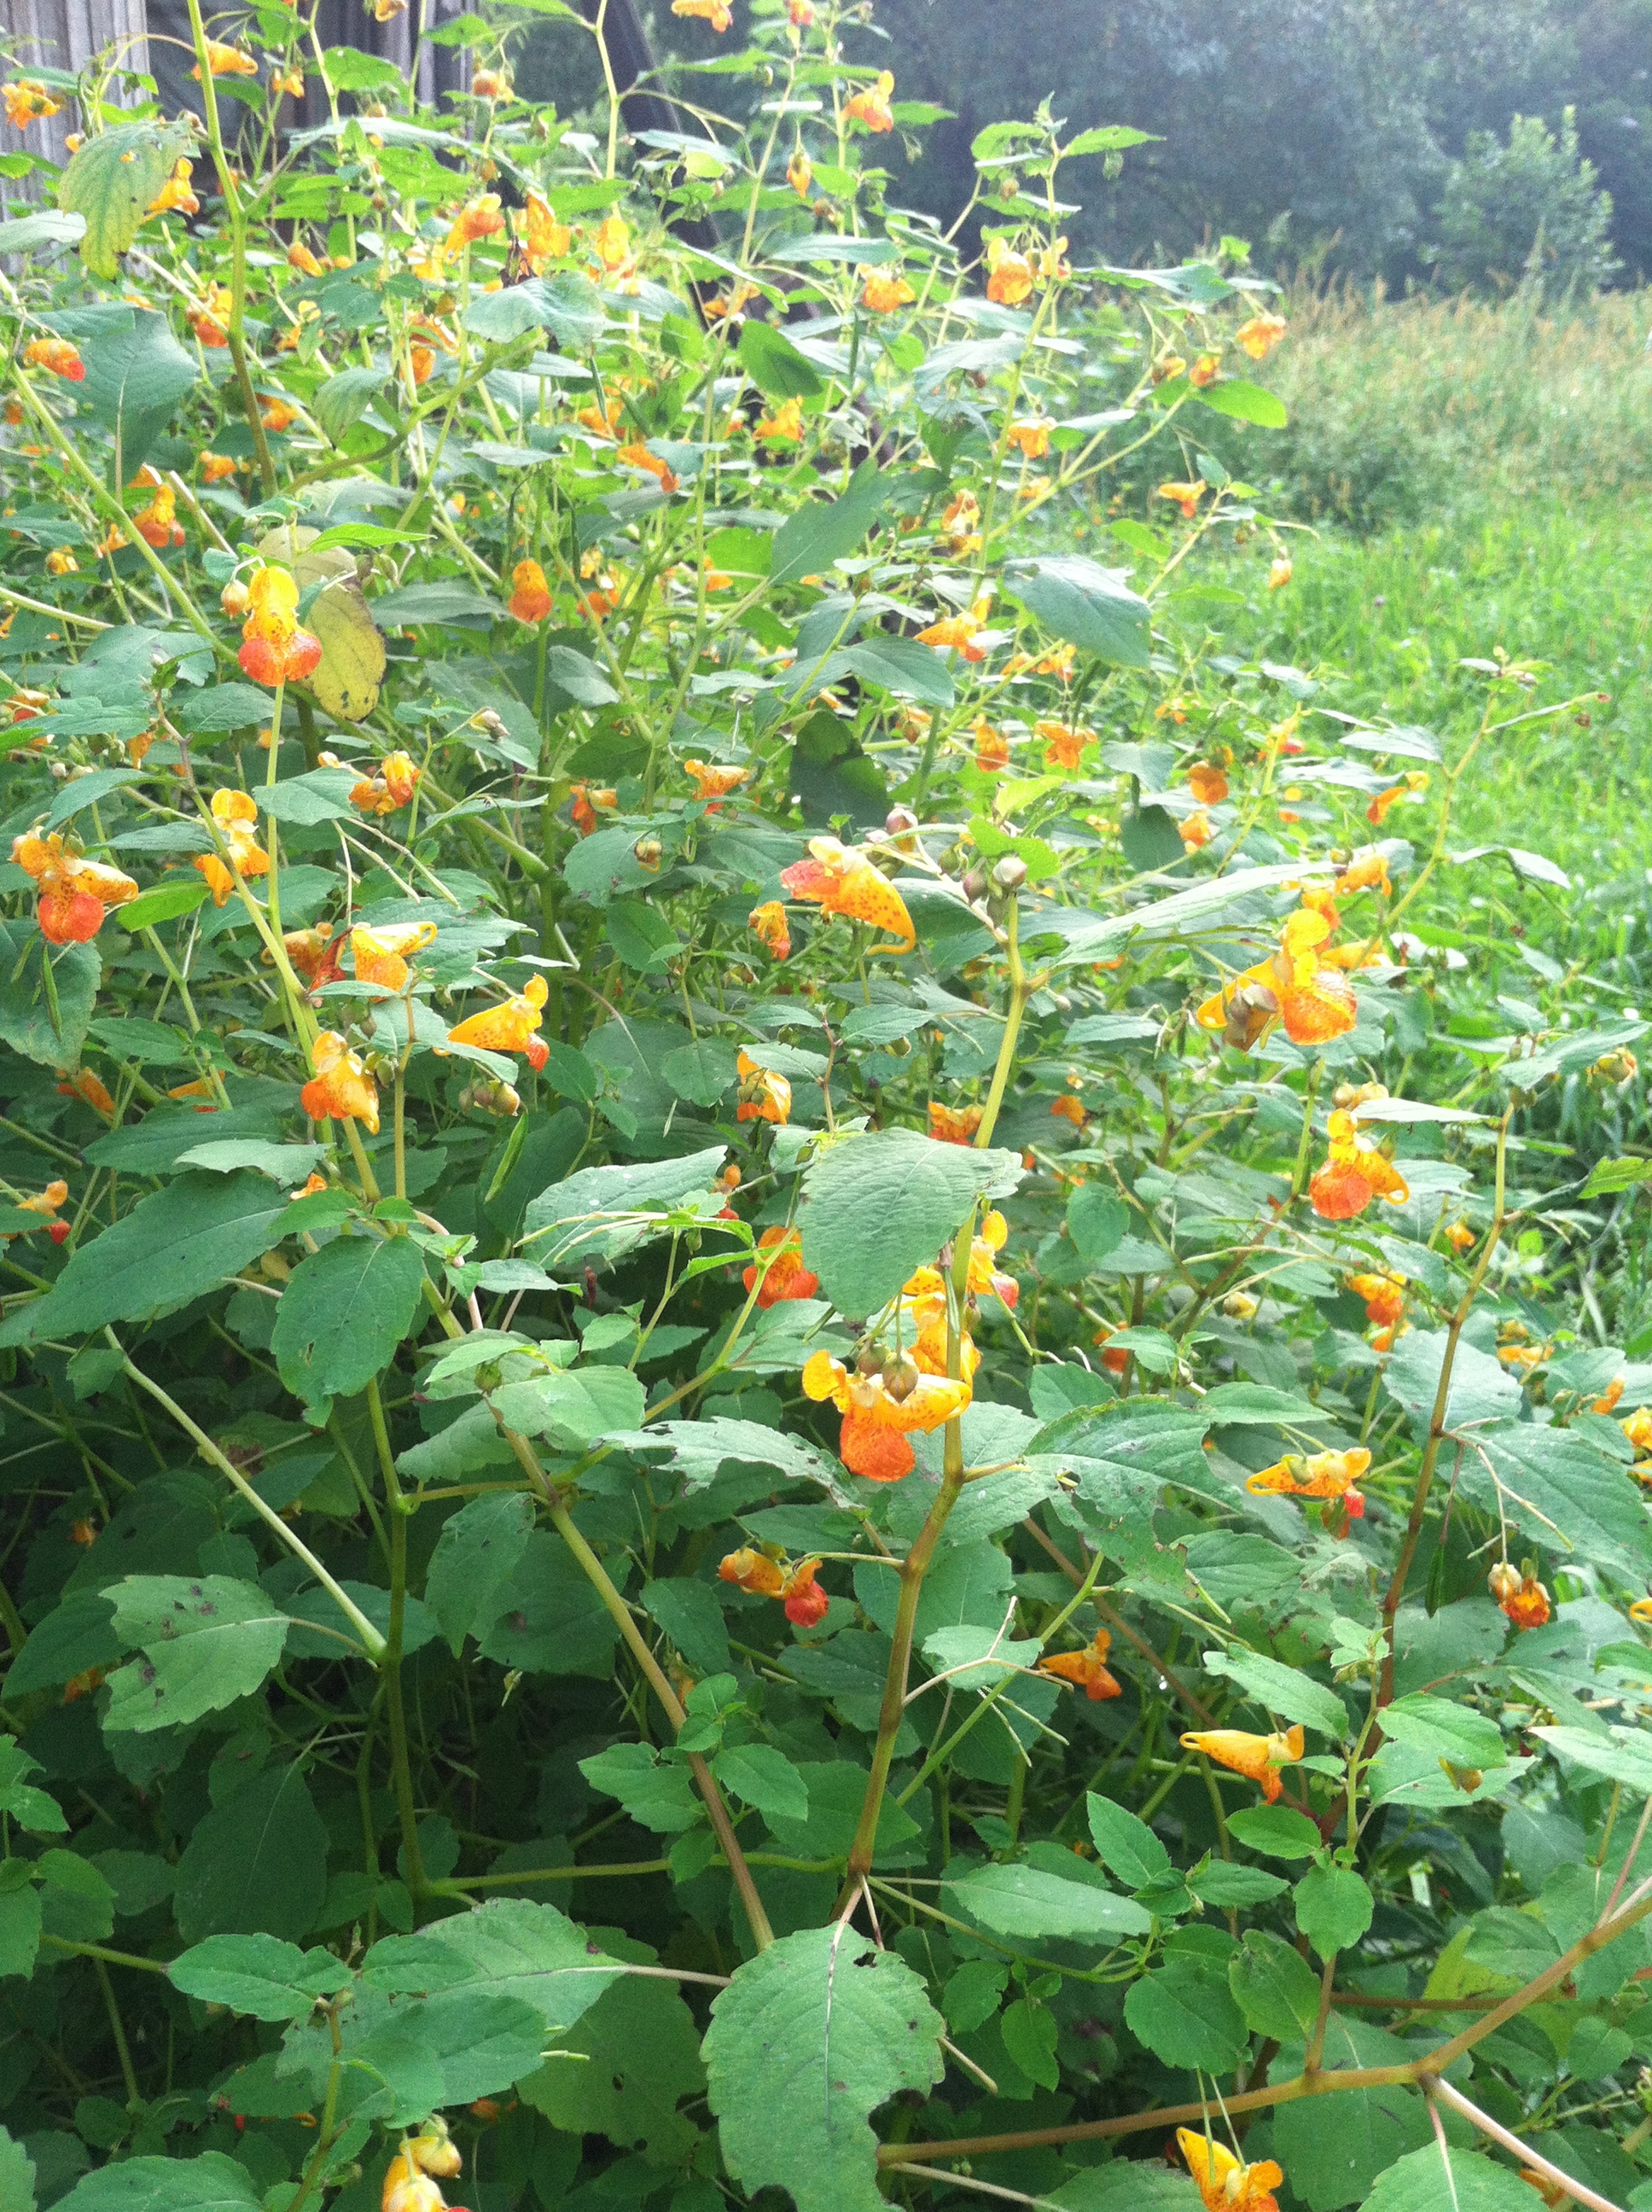 jewelweed abounds.